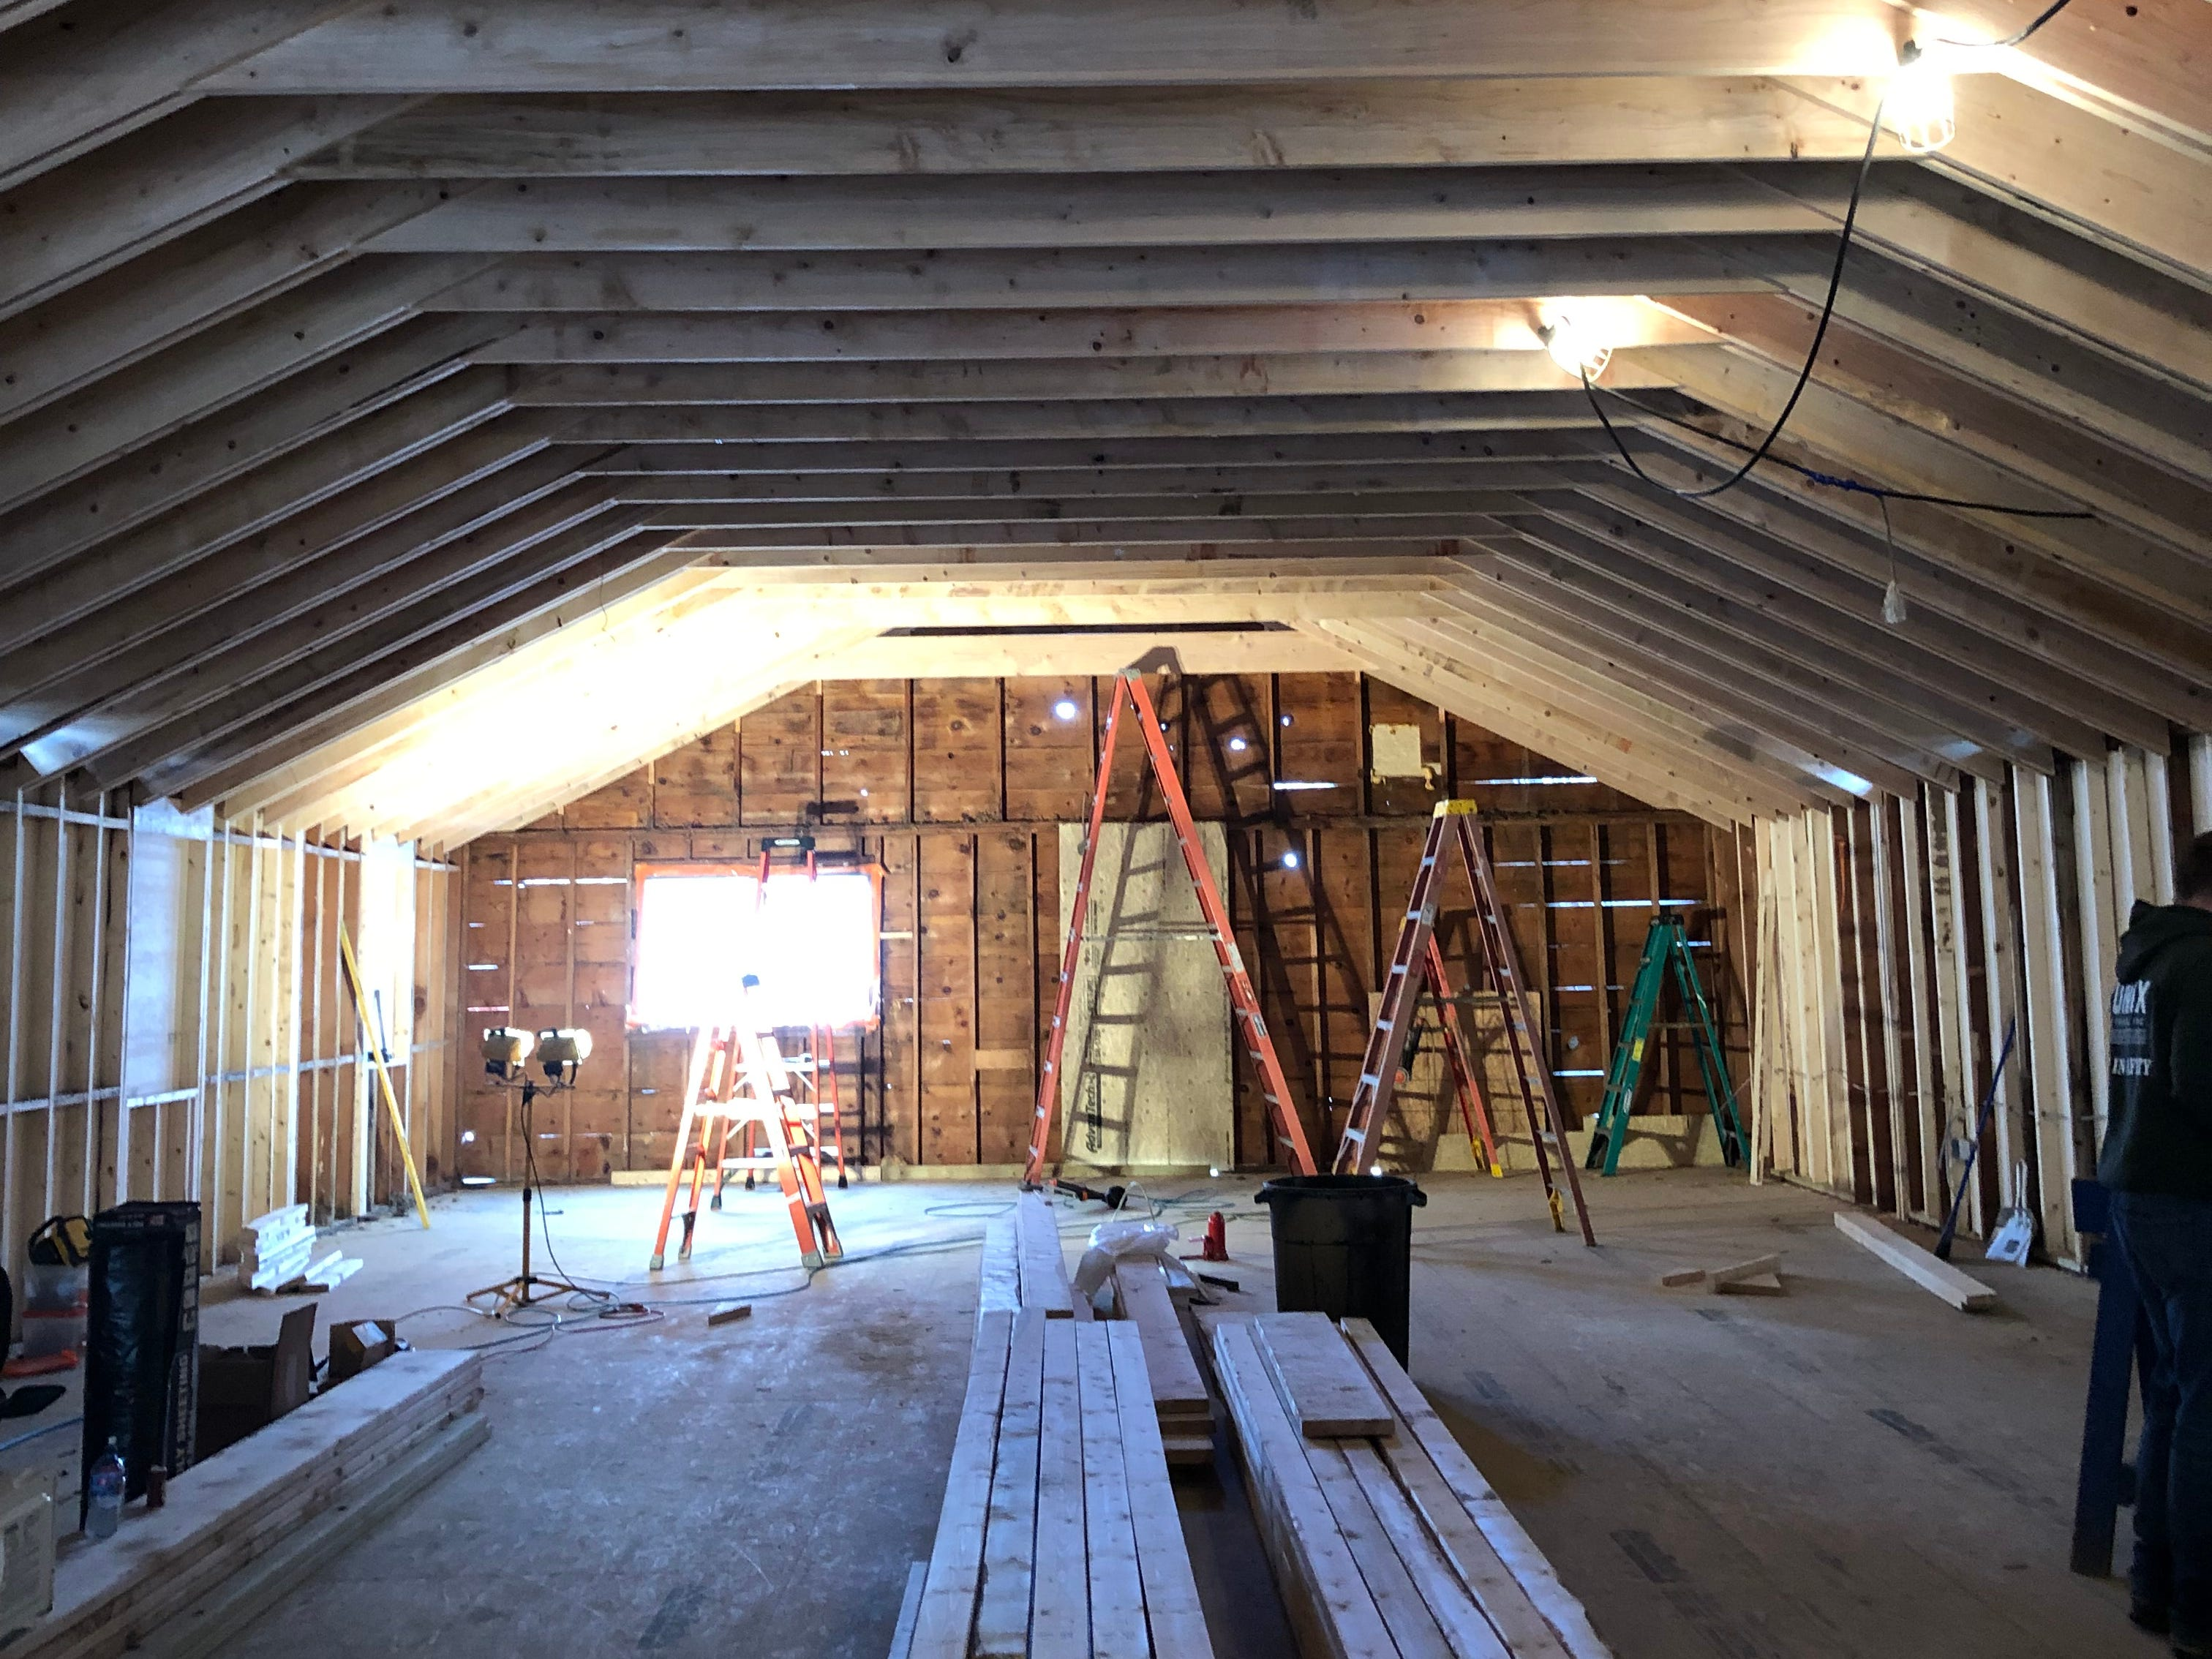 Jeannie Breshears, the new owner of what was once Aunt Martha's Pancake House, says the former ceiling was only 7 feet and 9 inches high.